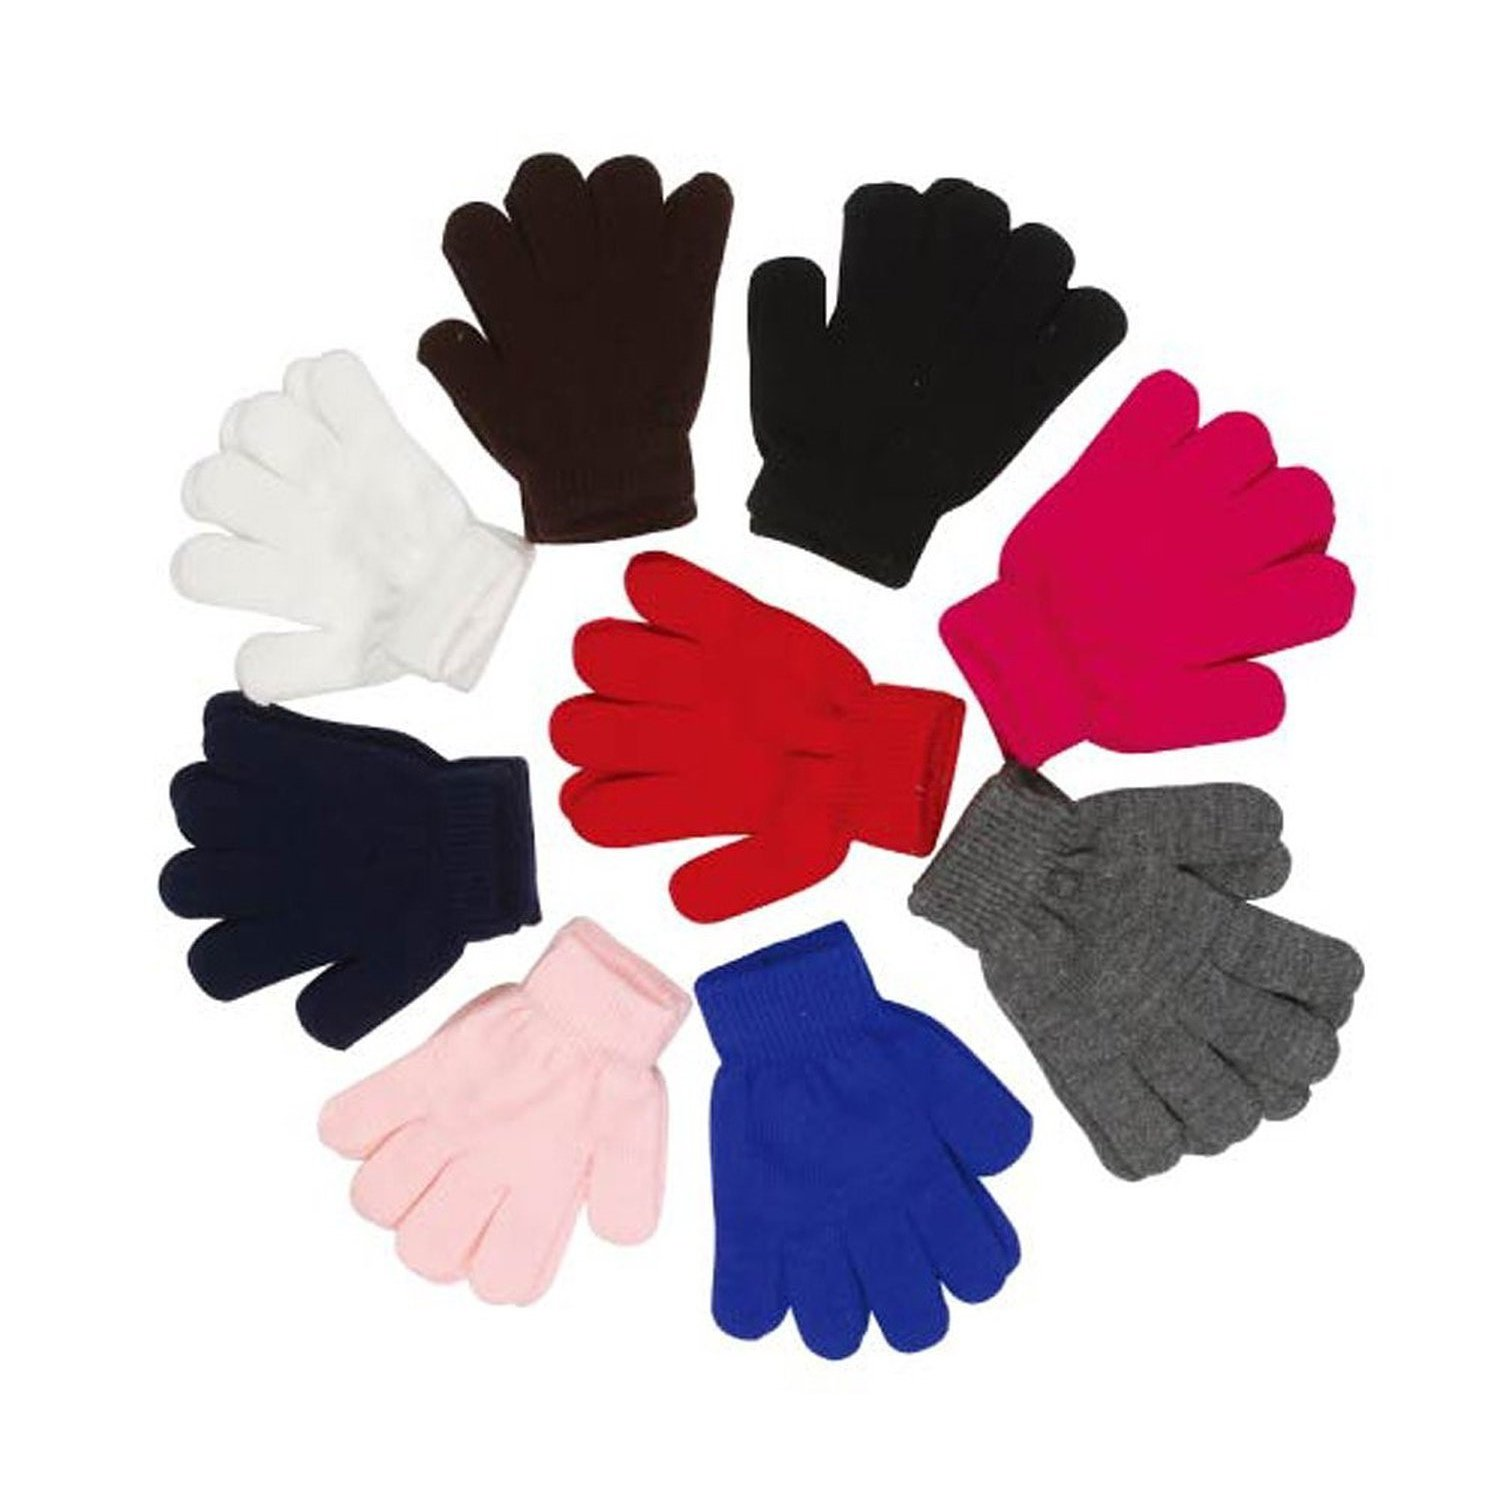 Akanbou Magic Gloves Stretch Gloves Knit 6 Pairs Wholesale- Fit Teens and Adults TE-0001